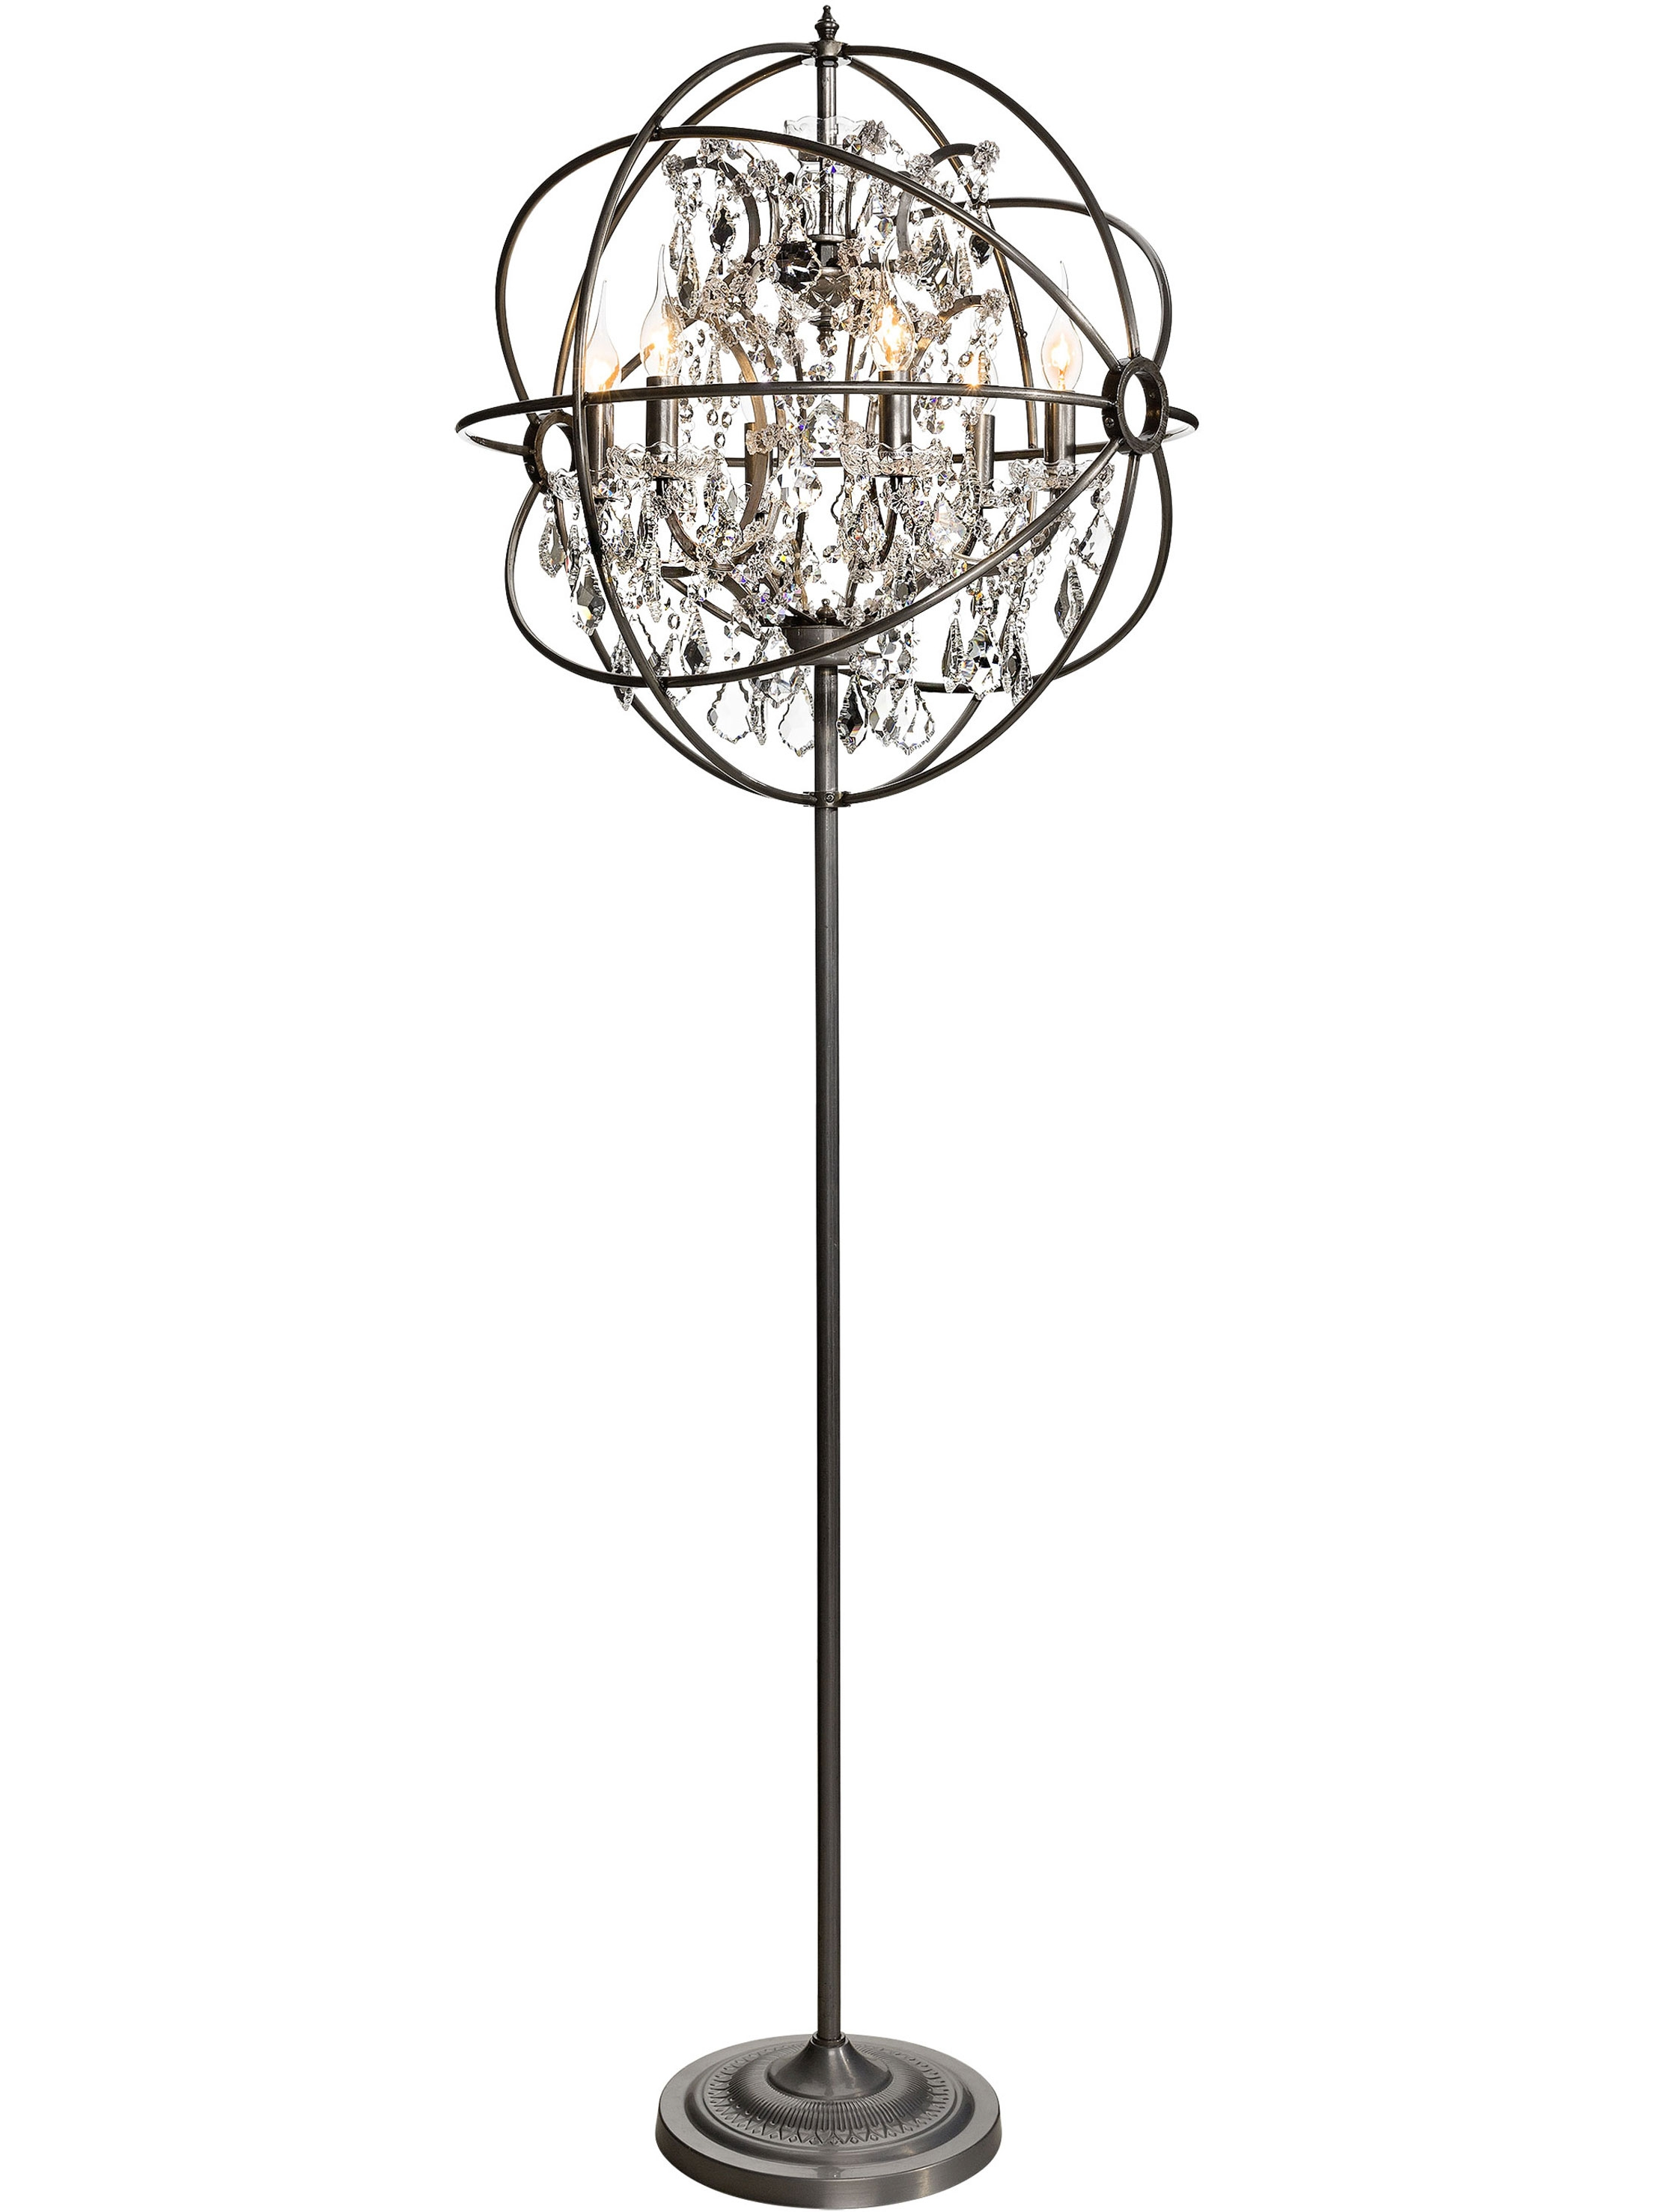 Decor Adorable Chandelier Floor Lamp Remodeling In Brass Gold Intended For Chandelier Standing Lamps (Image 6 of 25)